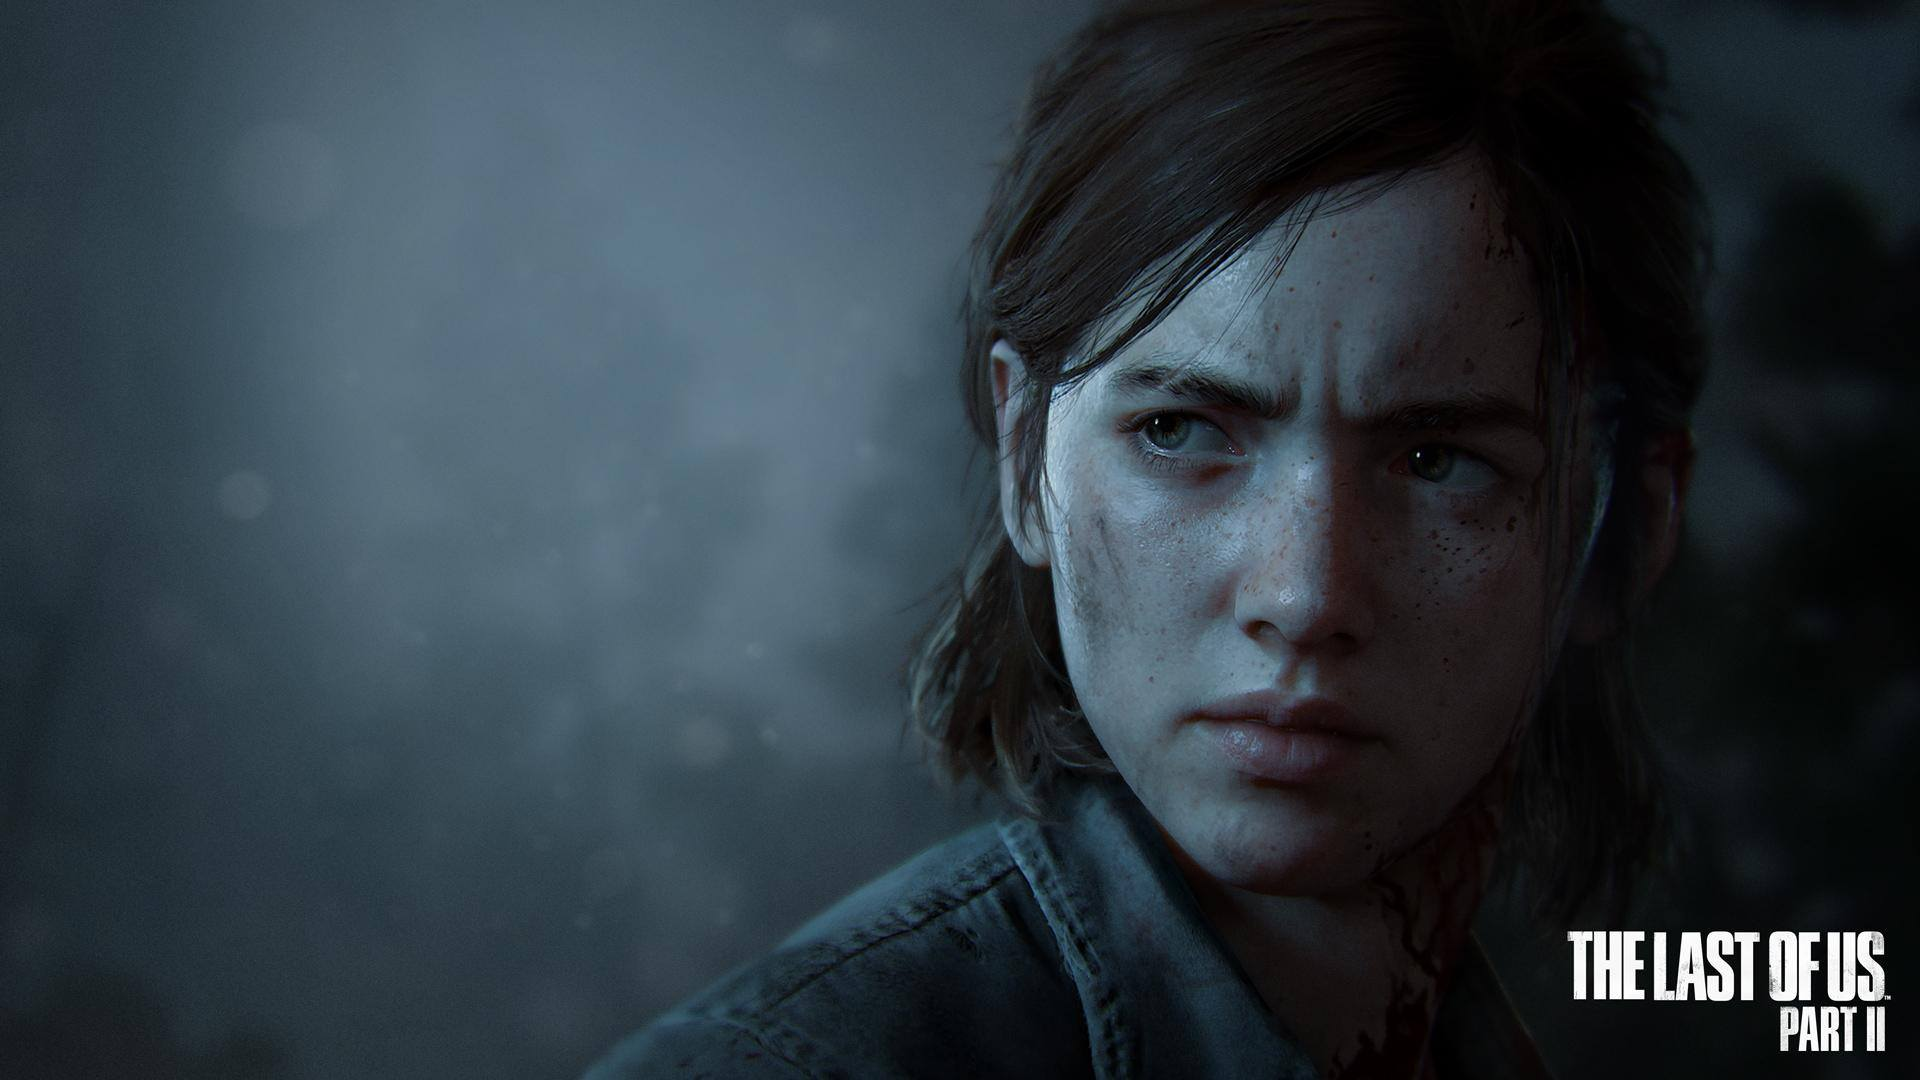 The Last of Us Part II   Ellie HD Wallpaper Background Image 1920x1080